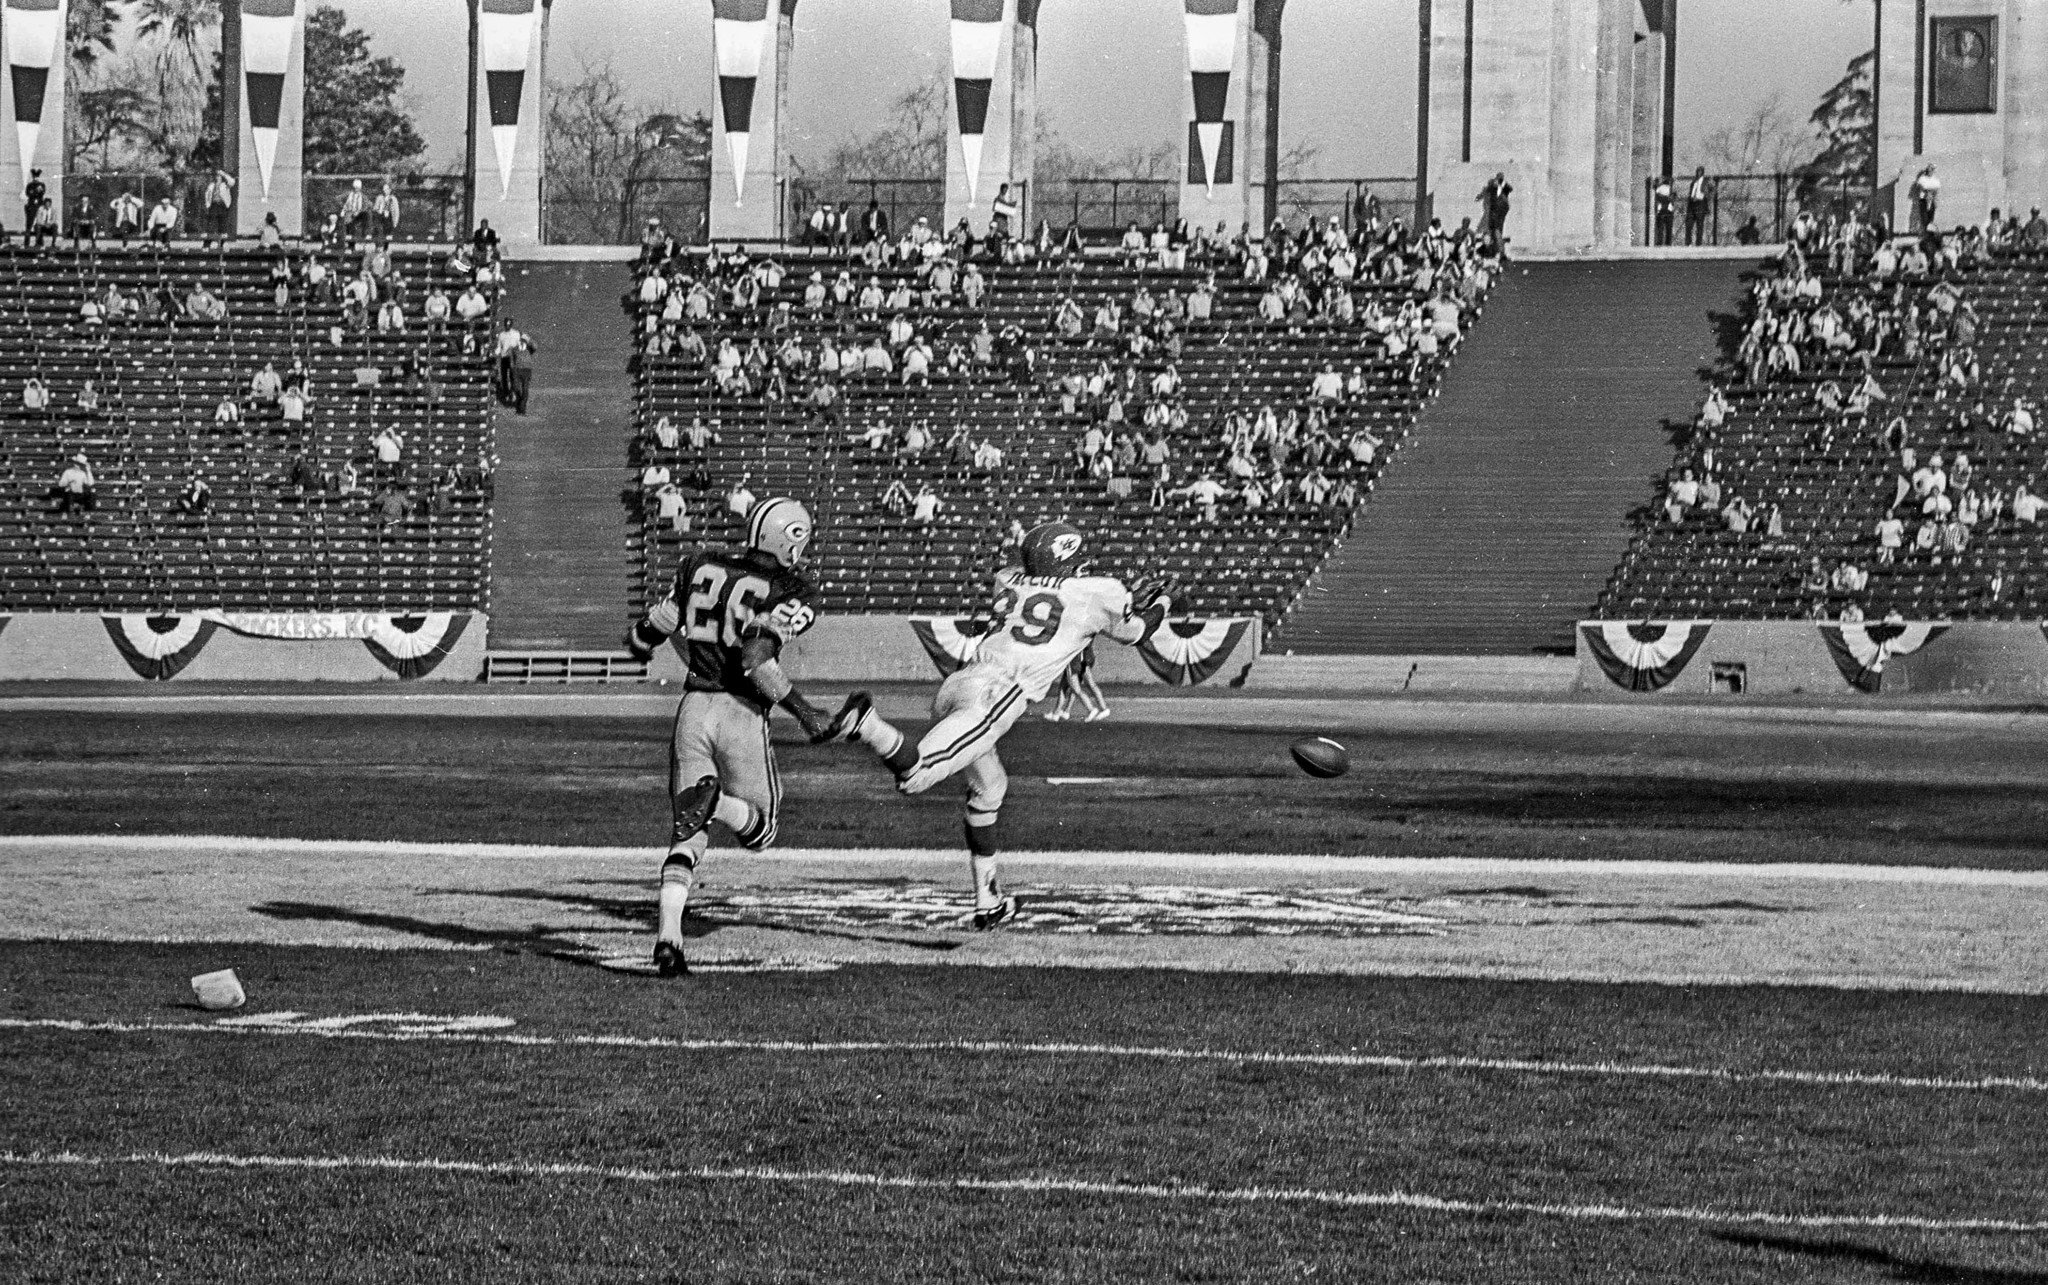 Jan. 15, 1967: A pass for Chiefs' Otis Taylor falls incomplete during first Super Bowl game. Defendi